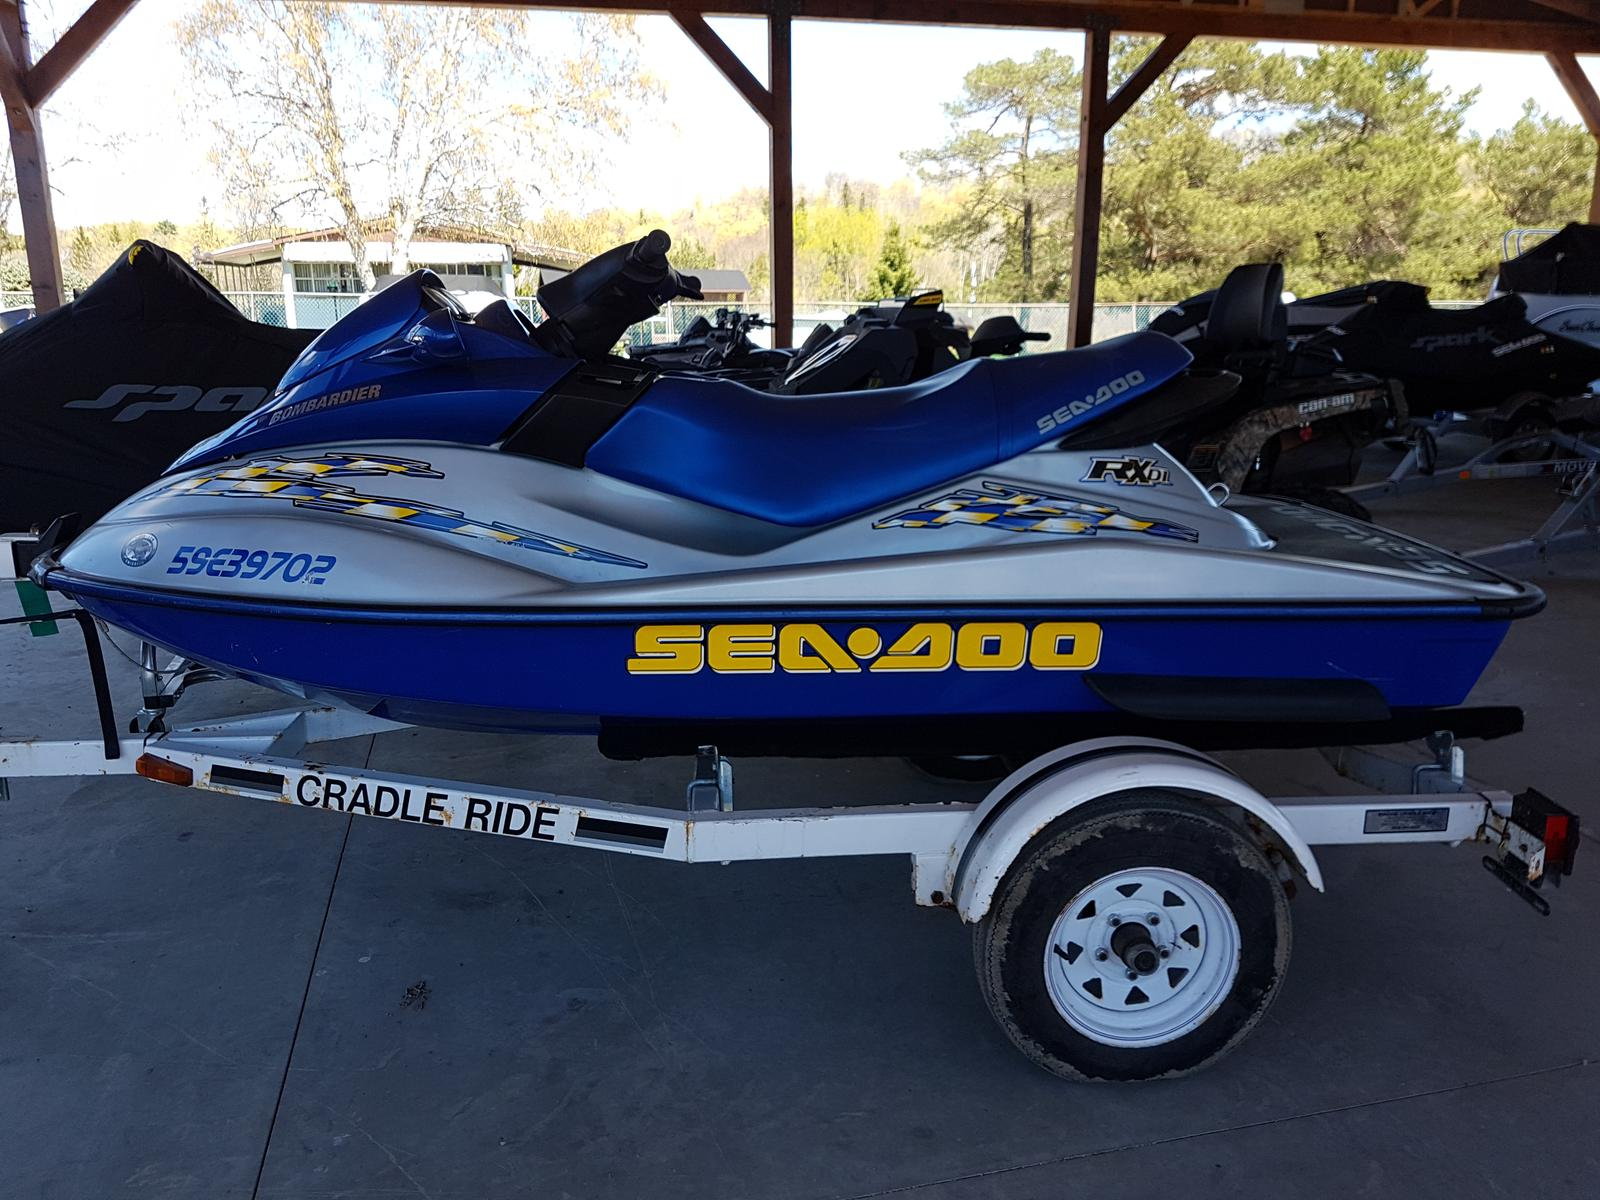 For Sale: 2002 Sea Doo Pwc Rx Di ft<br/>Harper Power Sports- Haliburton